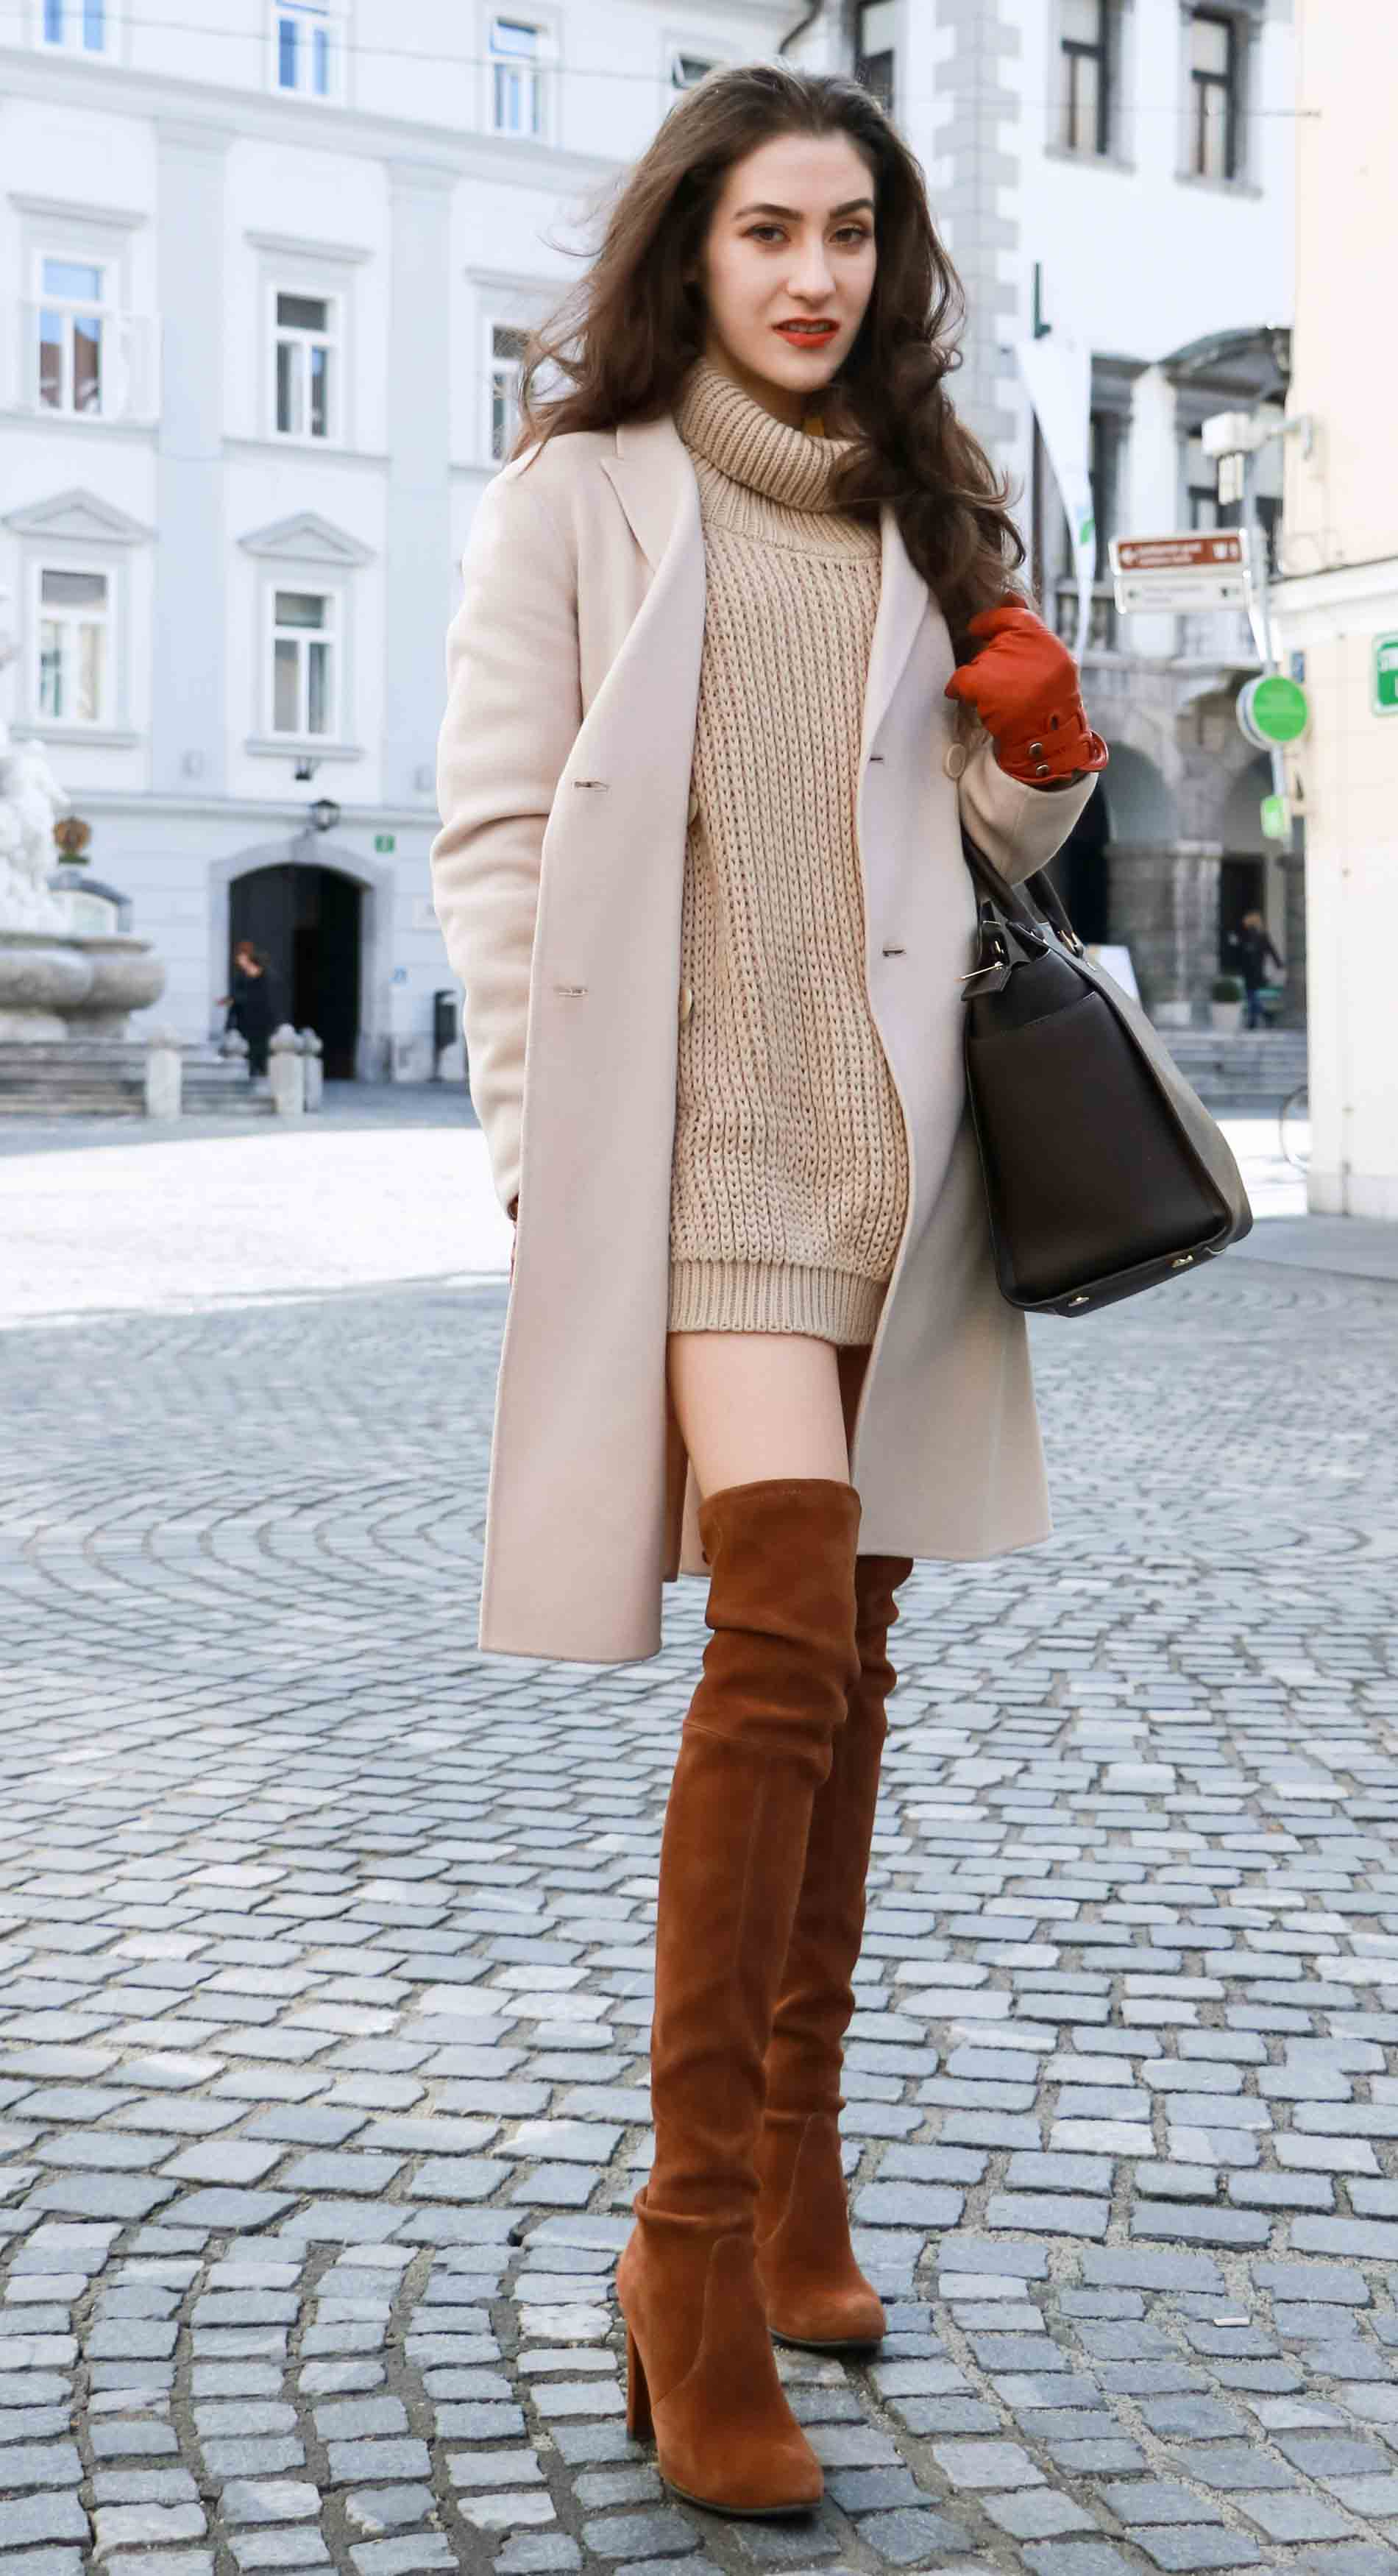 Fashion Blogger Veronika Lipar of Brunette from Wall wearing double breasted coat, cable knit turtleneck camel sweater dress and brown Stuart Weitzman over the knee boots, brown Michael Kors Selma bag, leather gloves